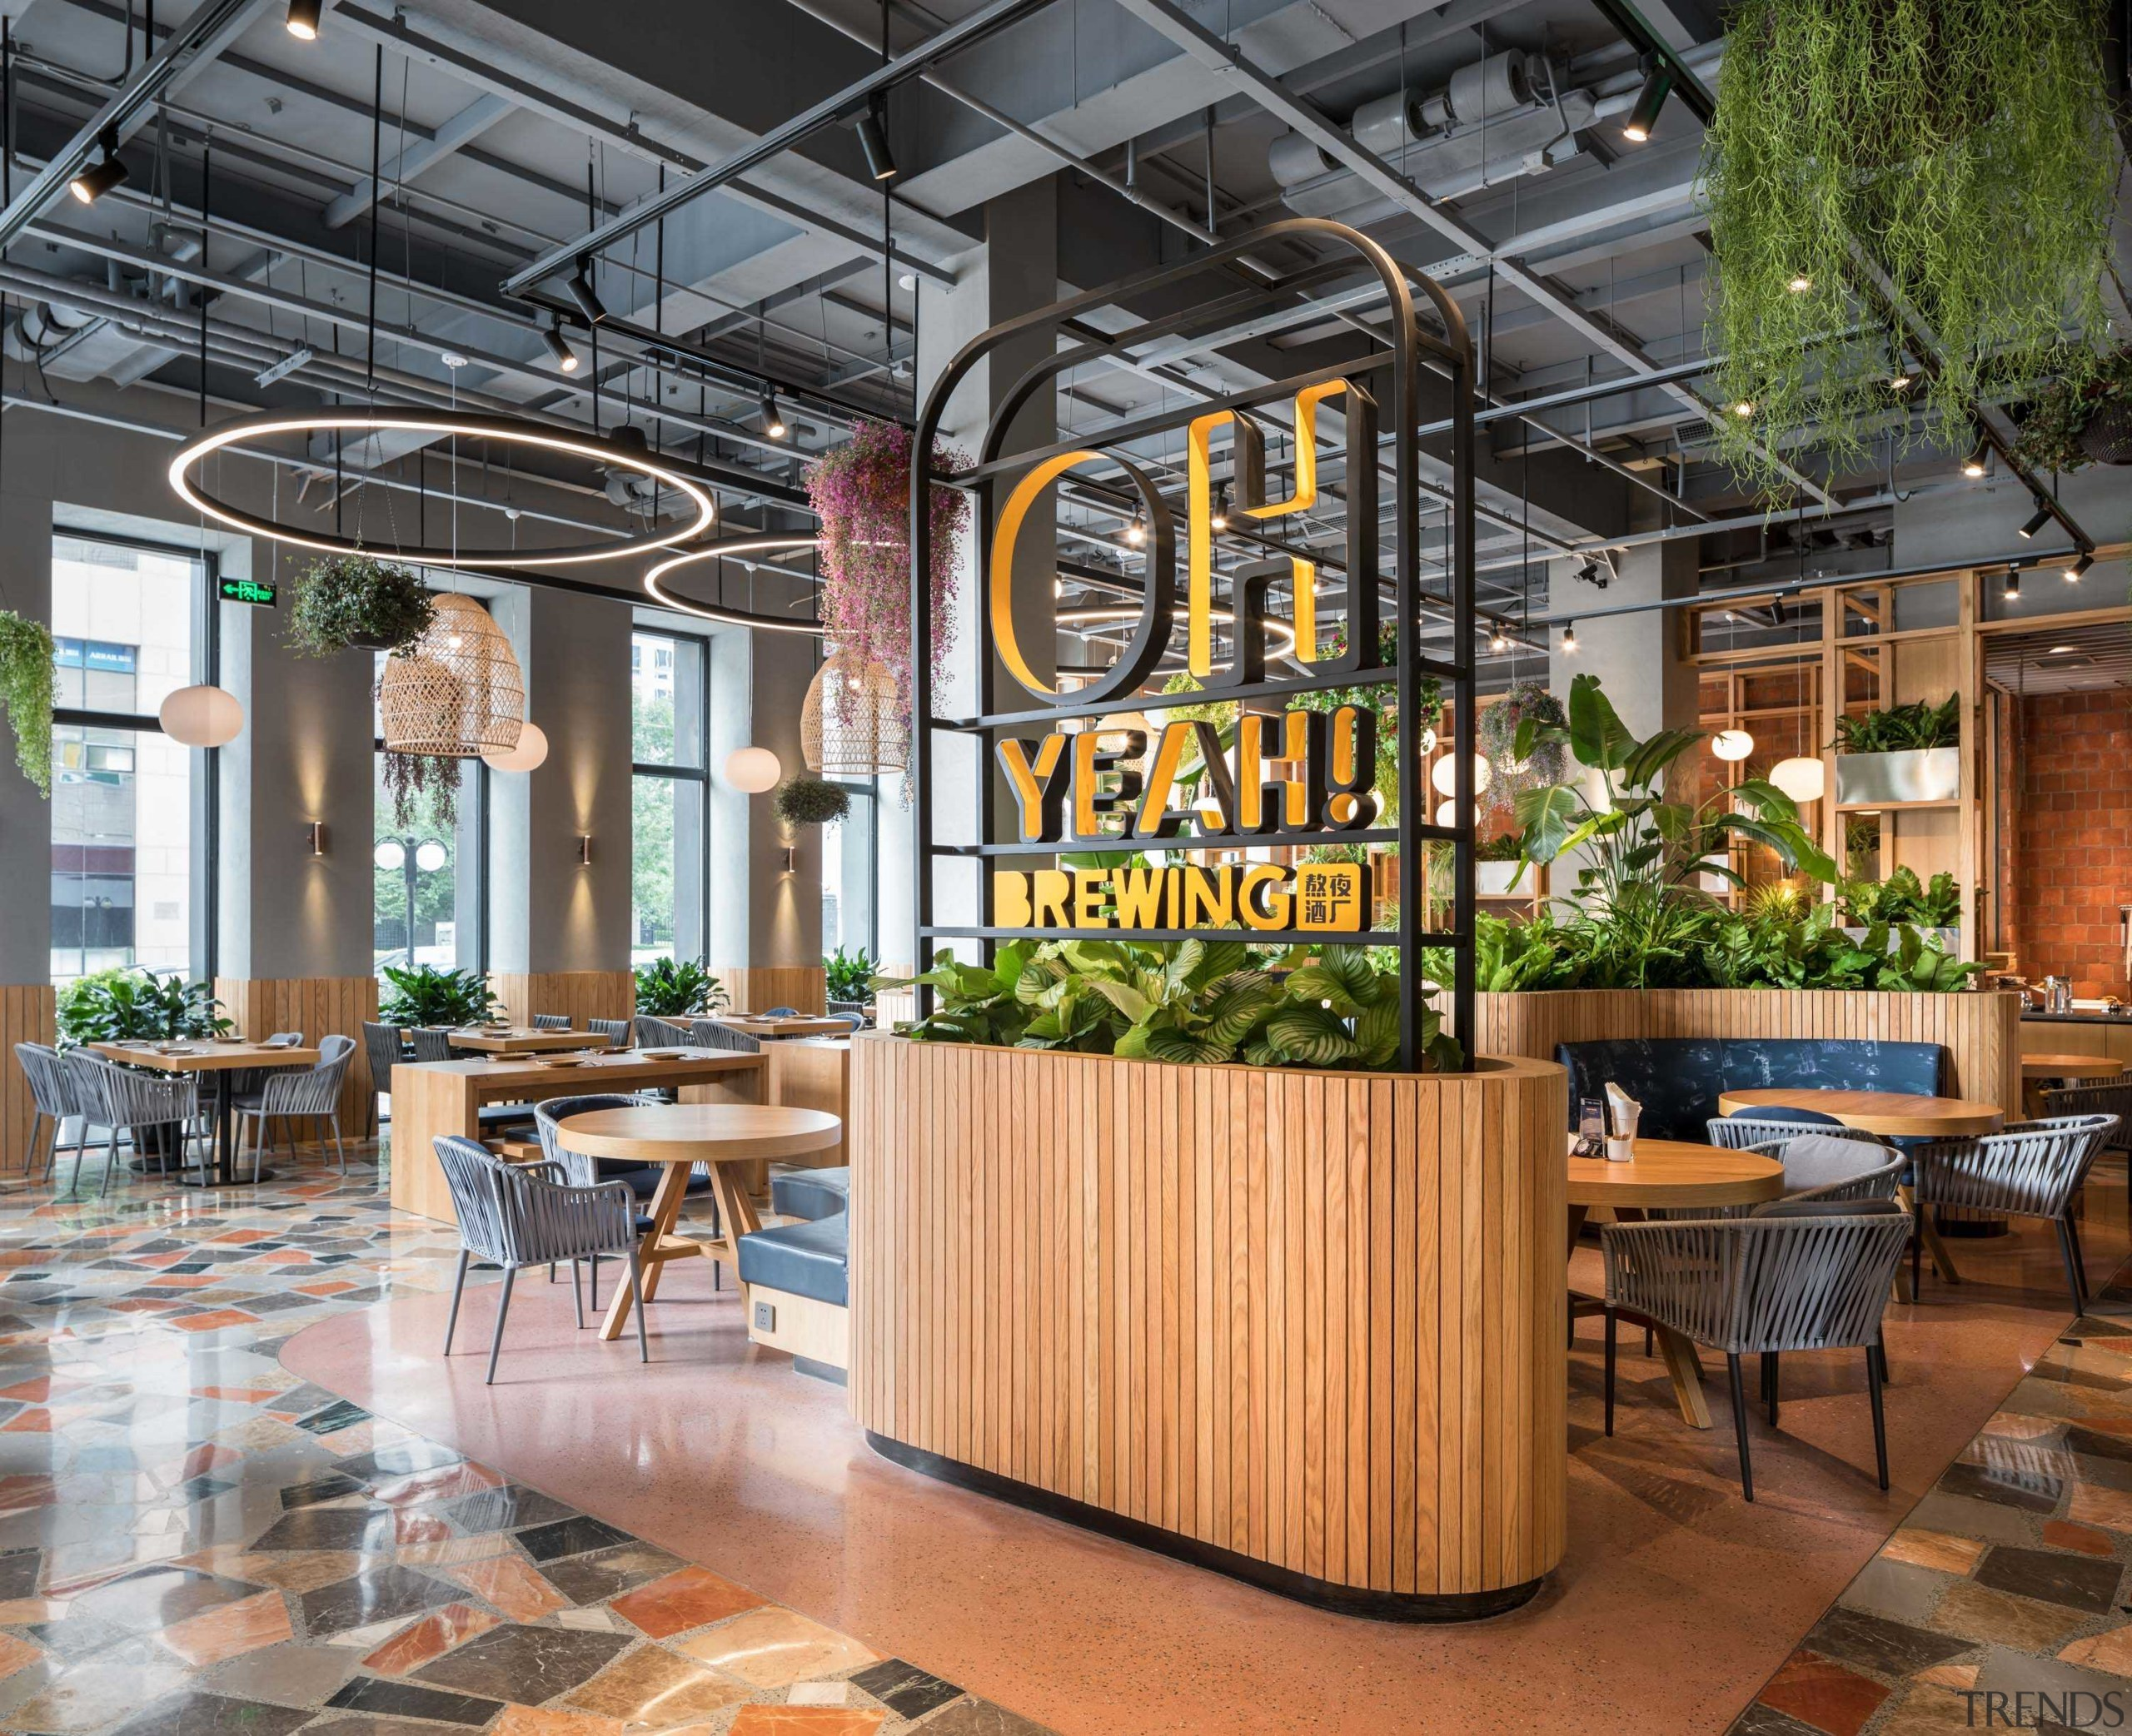 Welcome to a fresh taste of brewing supremacy. architecture, building, ceiling, floor, flooring, furniture, interior design, lobby, restaurant, room, gray